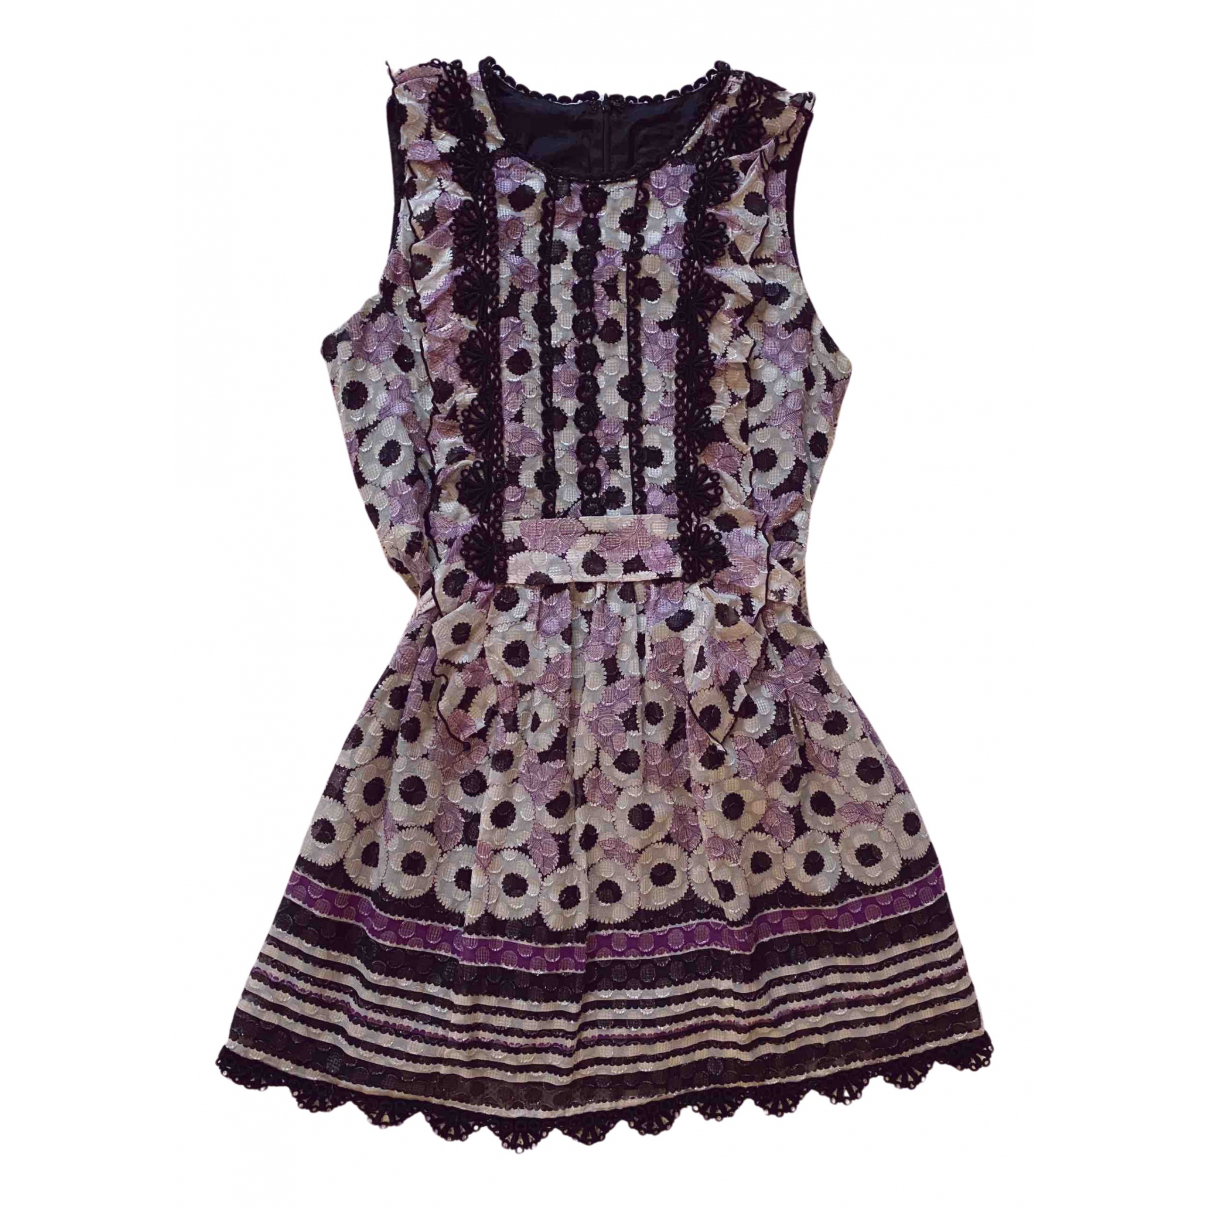 Anna Sui \N Kleid in  Bunt Polyester